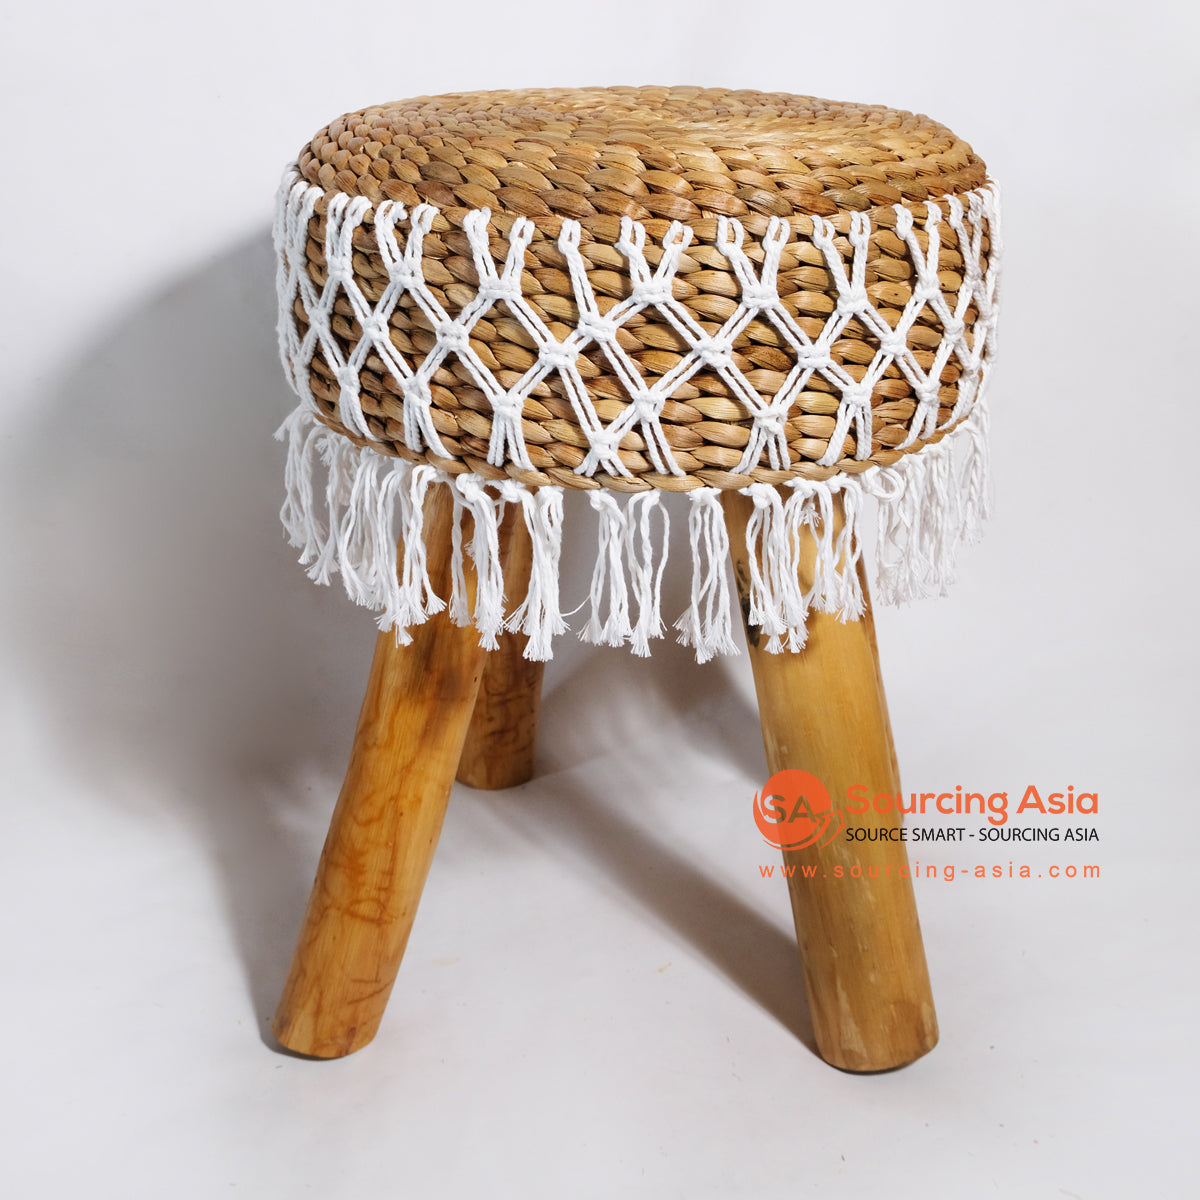 MRC041 WOODEN STOOL WITH WATER HYACINTH SEAT AND WHITE MACRAME